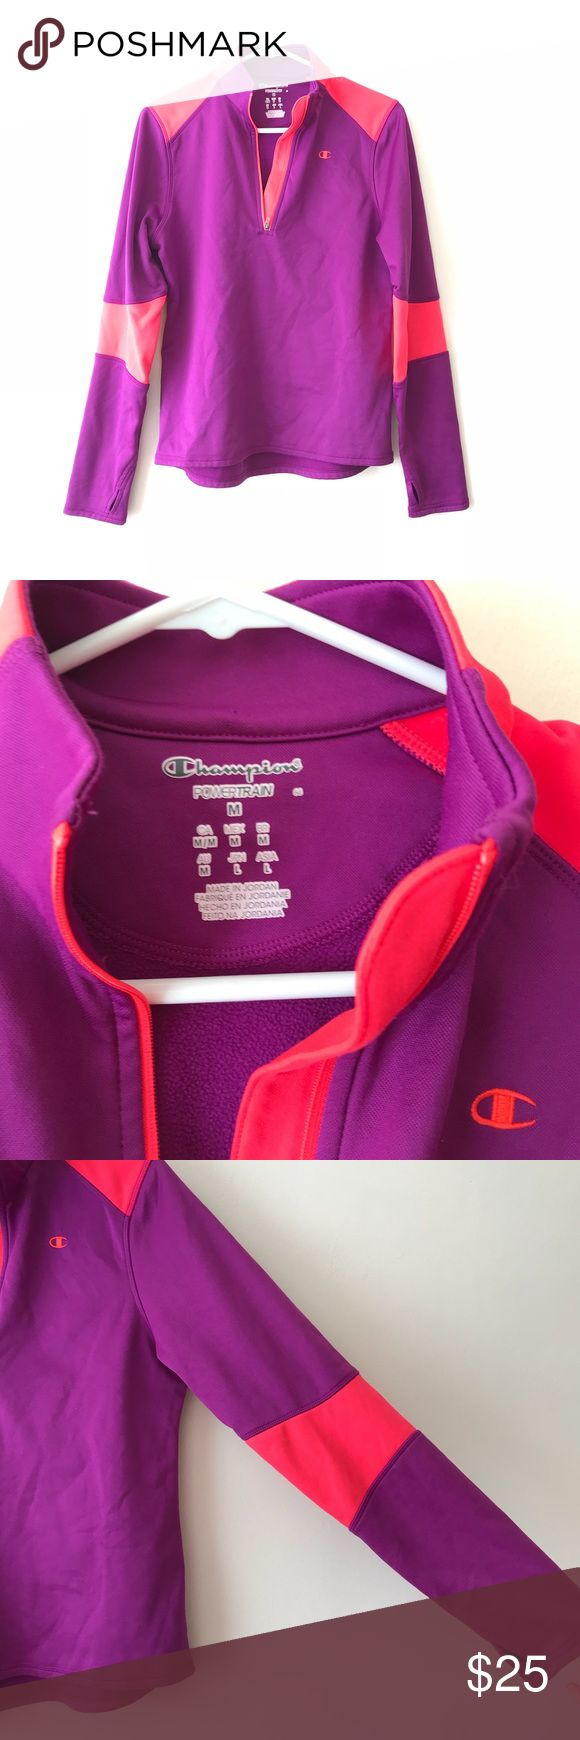 Champion purple and coral power train zip up Size medium In great condition Vibrant color combination perfect for coming spring! Champion Tops Sweatshirts & Hoodies